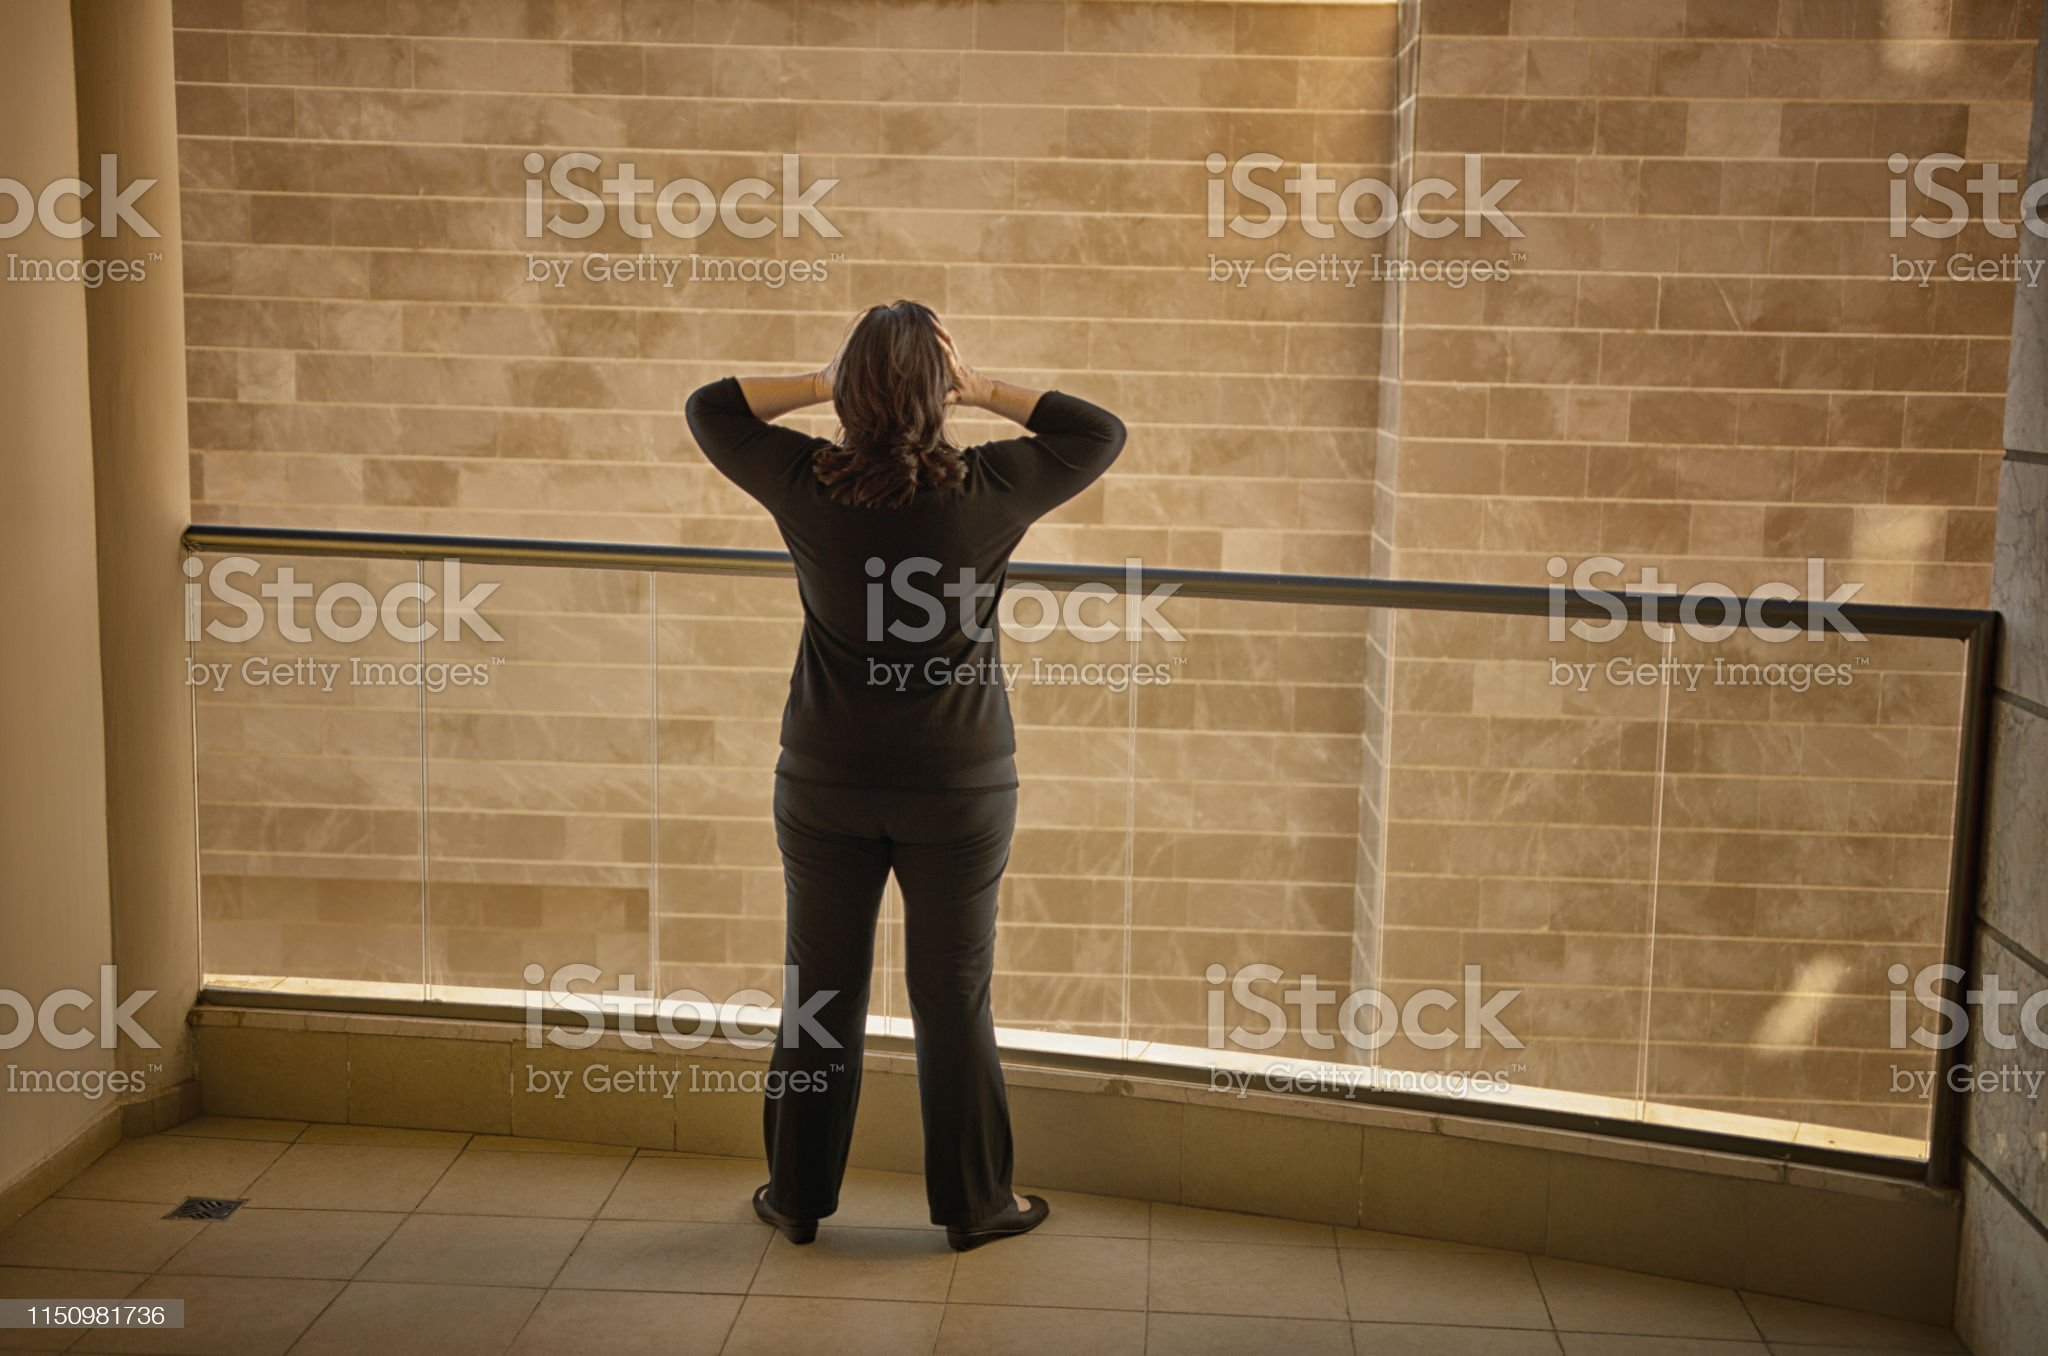 Small mature adult woman stands near exterior decorative glass balcony aluminum fence looking at the wall